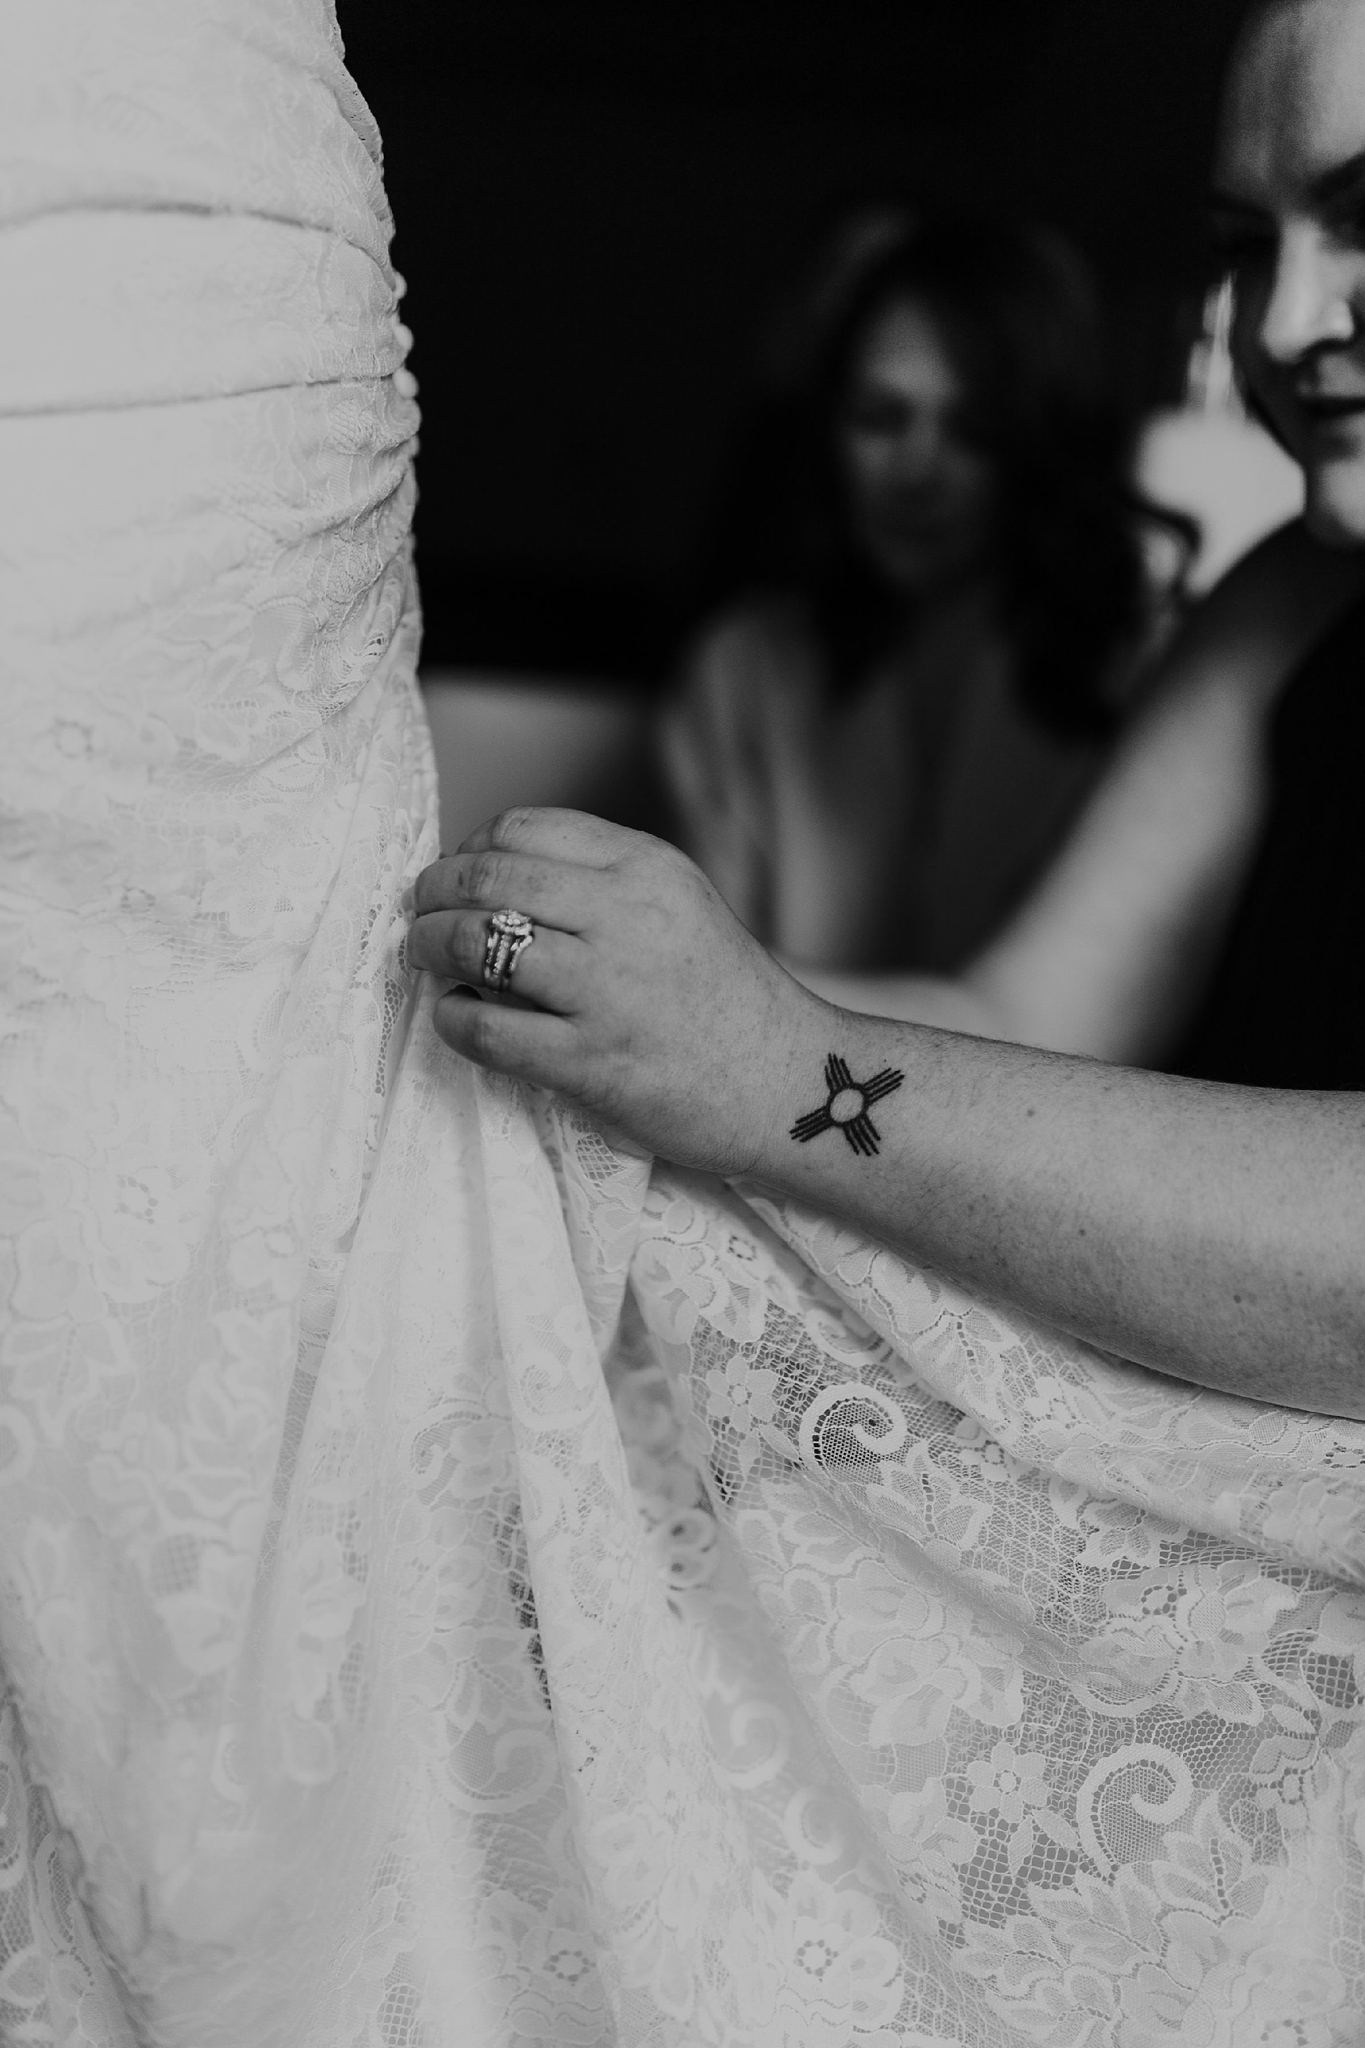 Alicia+lucia+photography+-+albuquerque+wedding+photographer+-+santa+fe+wedding+photography+-+new+mexico+wedding+photographer+-+albuquerque+wedding+-+sarabande+bed+breakfast+-+bed+and+breakfast+wedding_0091.jpg